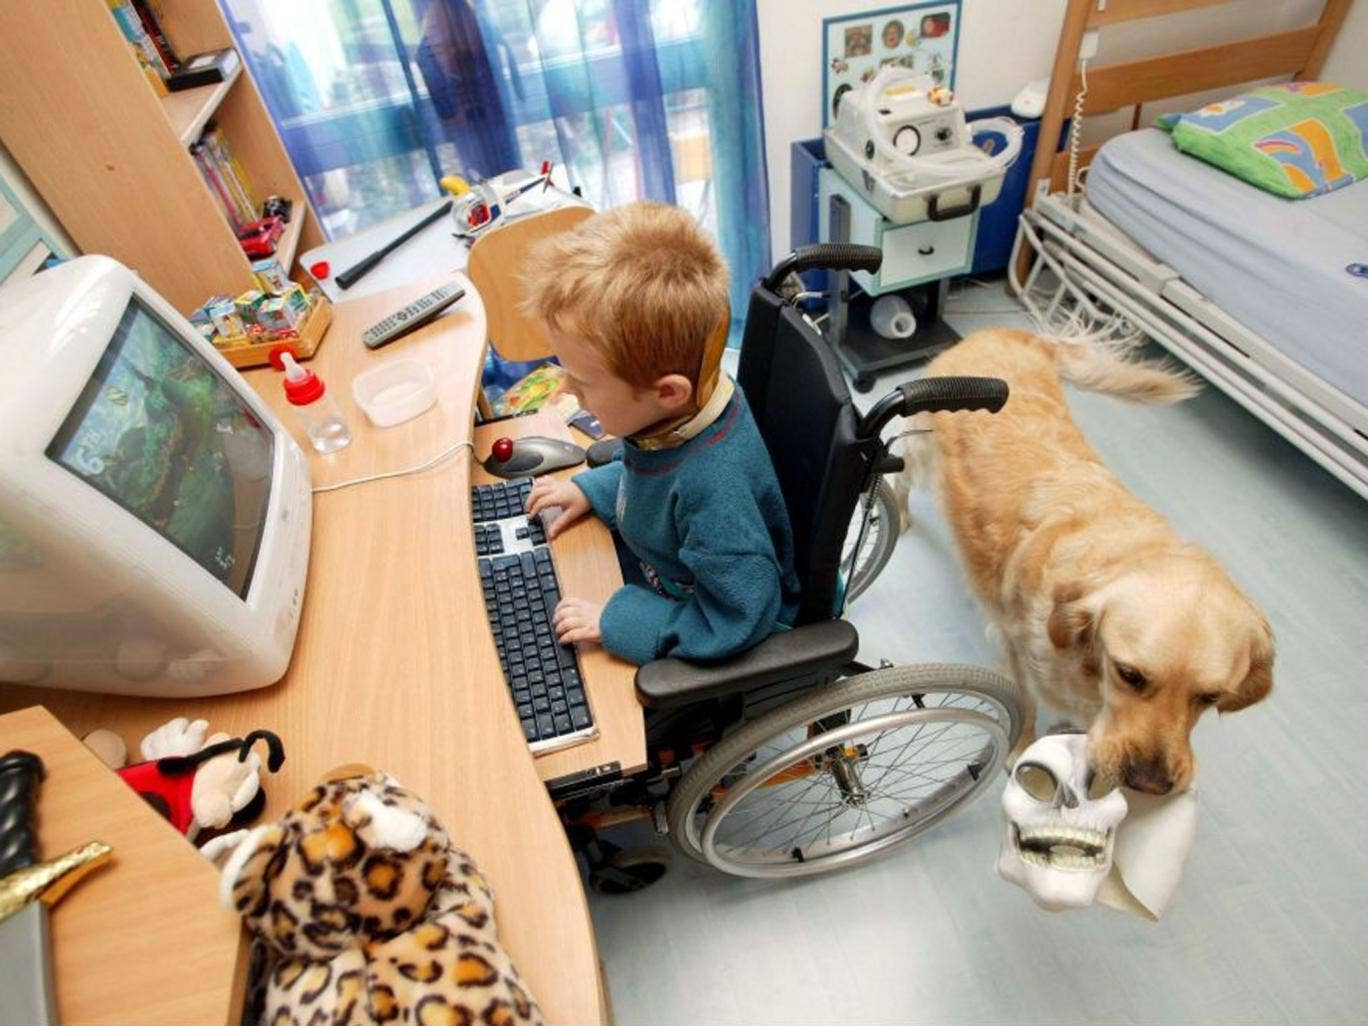 Six-year-old Alexis Martin's life has been transformed by Robot, his assistance dog provided by the charity Anecah